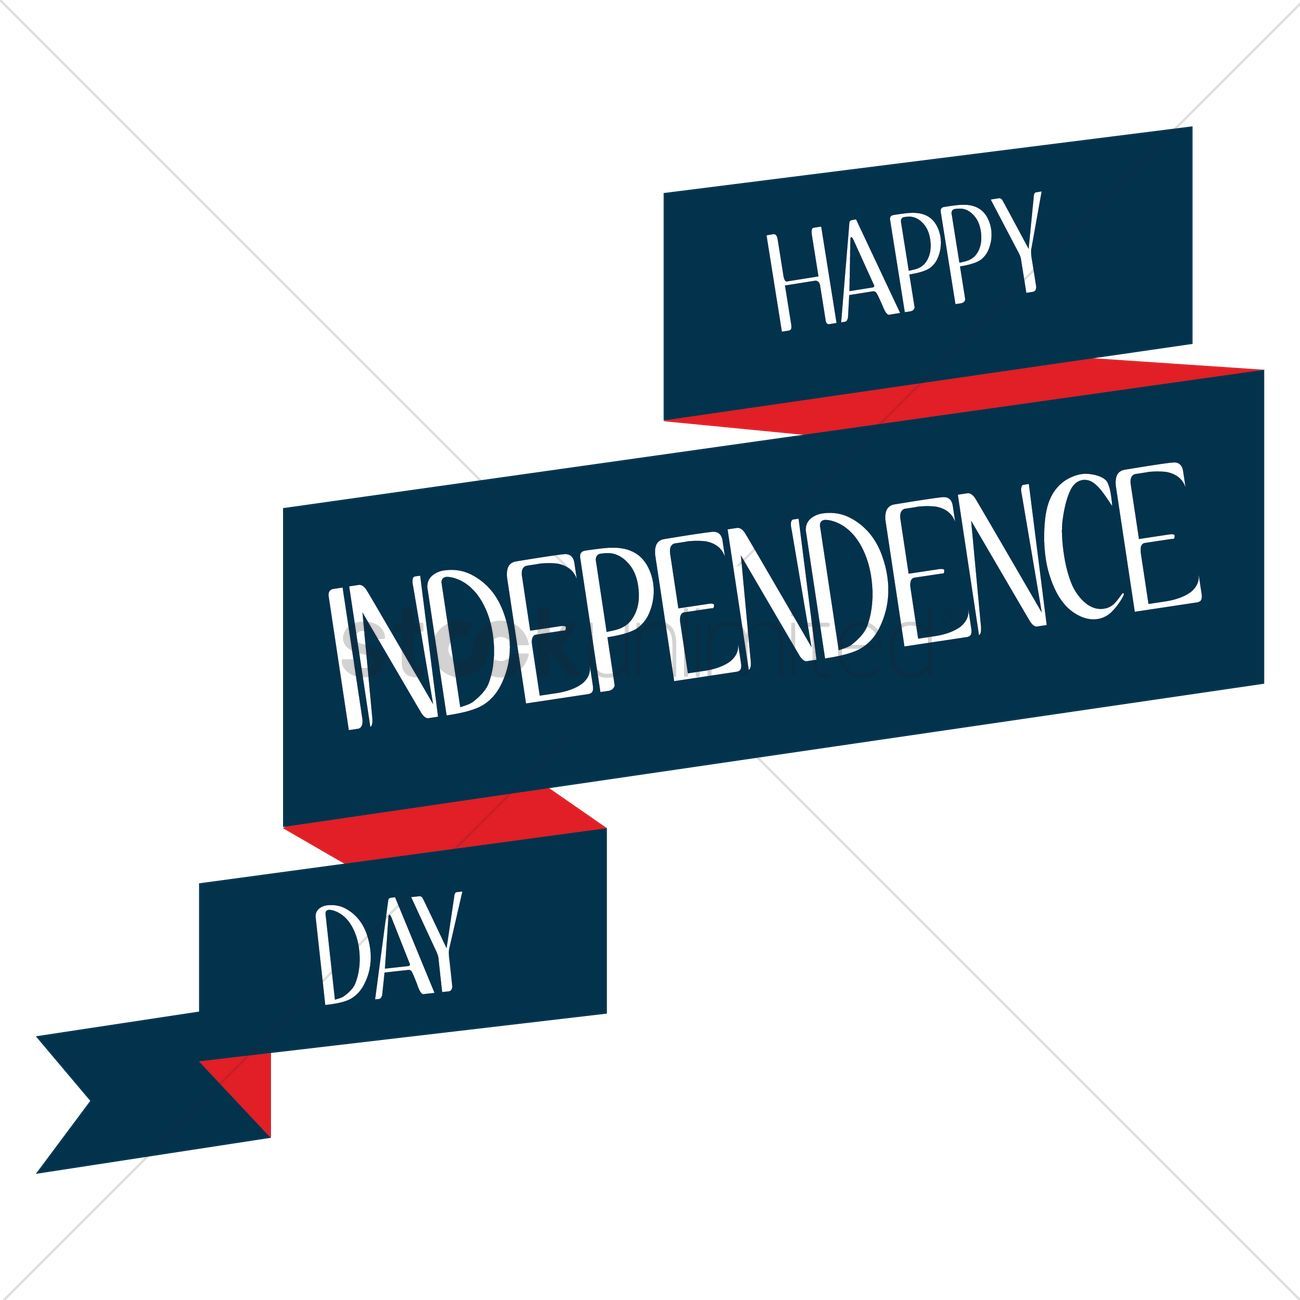 Happy Independence Banners Gaming Team Banners